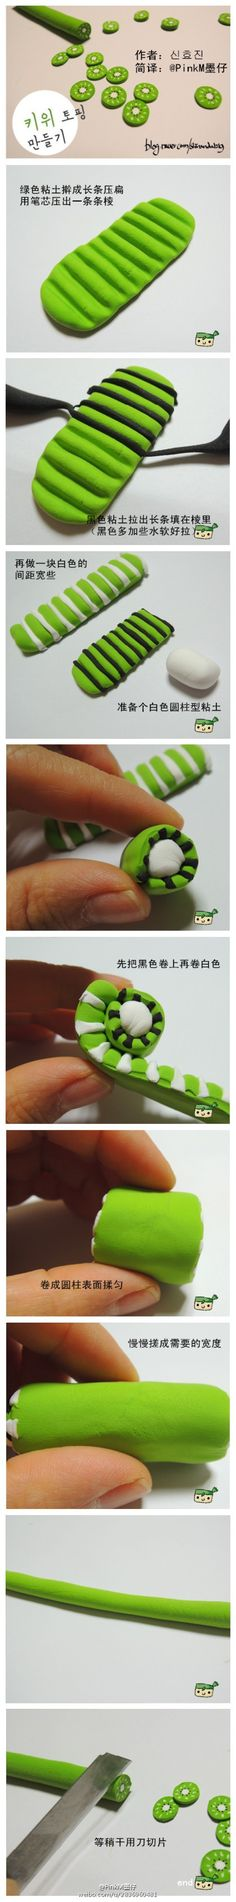 [Tutorial] This clay kiwi by:PinkM ink Aberdeen. Polymer Clay Kunst, Cute Polymer Clay, Cute Clay, Polymer Clay Canes, Polymer Clay Miniatures, Fimo Clay, Polymer Clay Projects, Polymer Clay Creations, Clay Beads